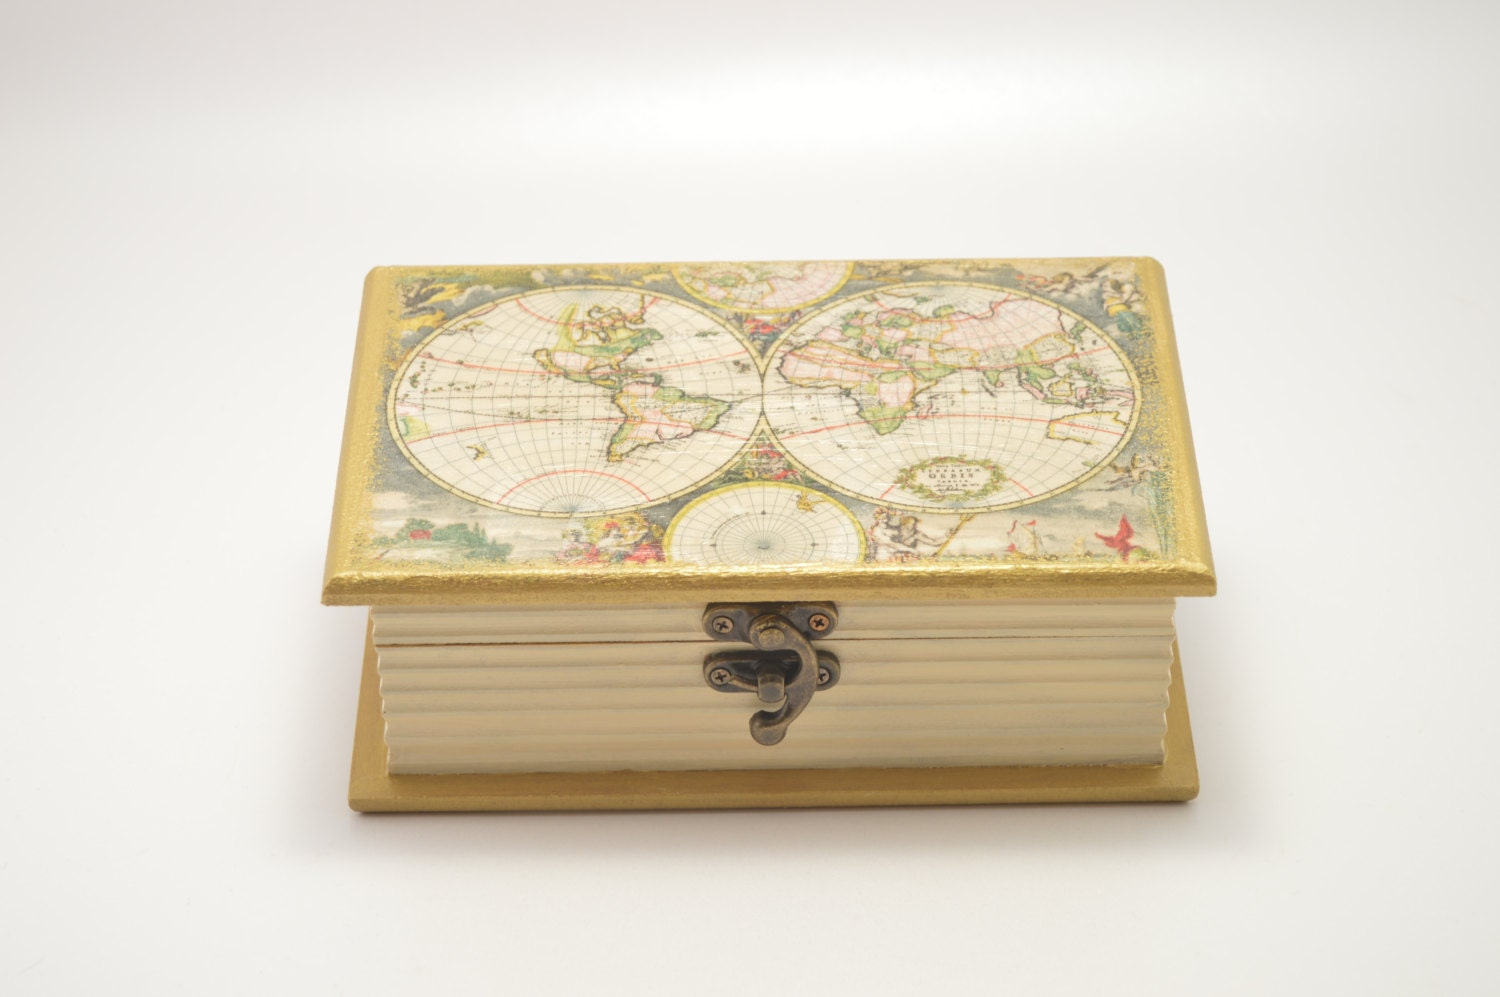 Decoupage wooden box jewelry box wooden box home zoom gumiabroncs Image collections